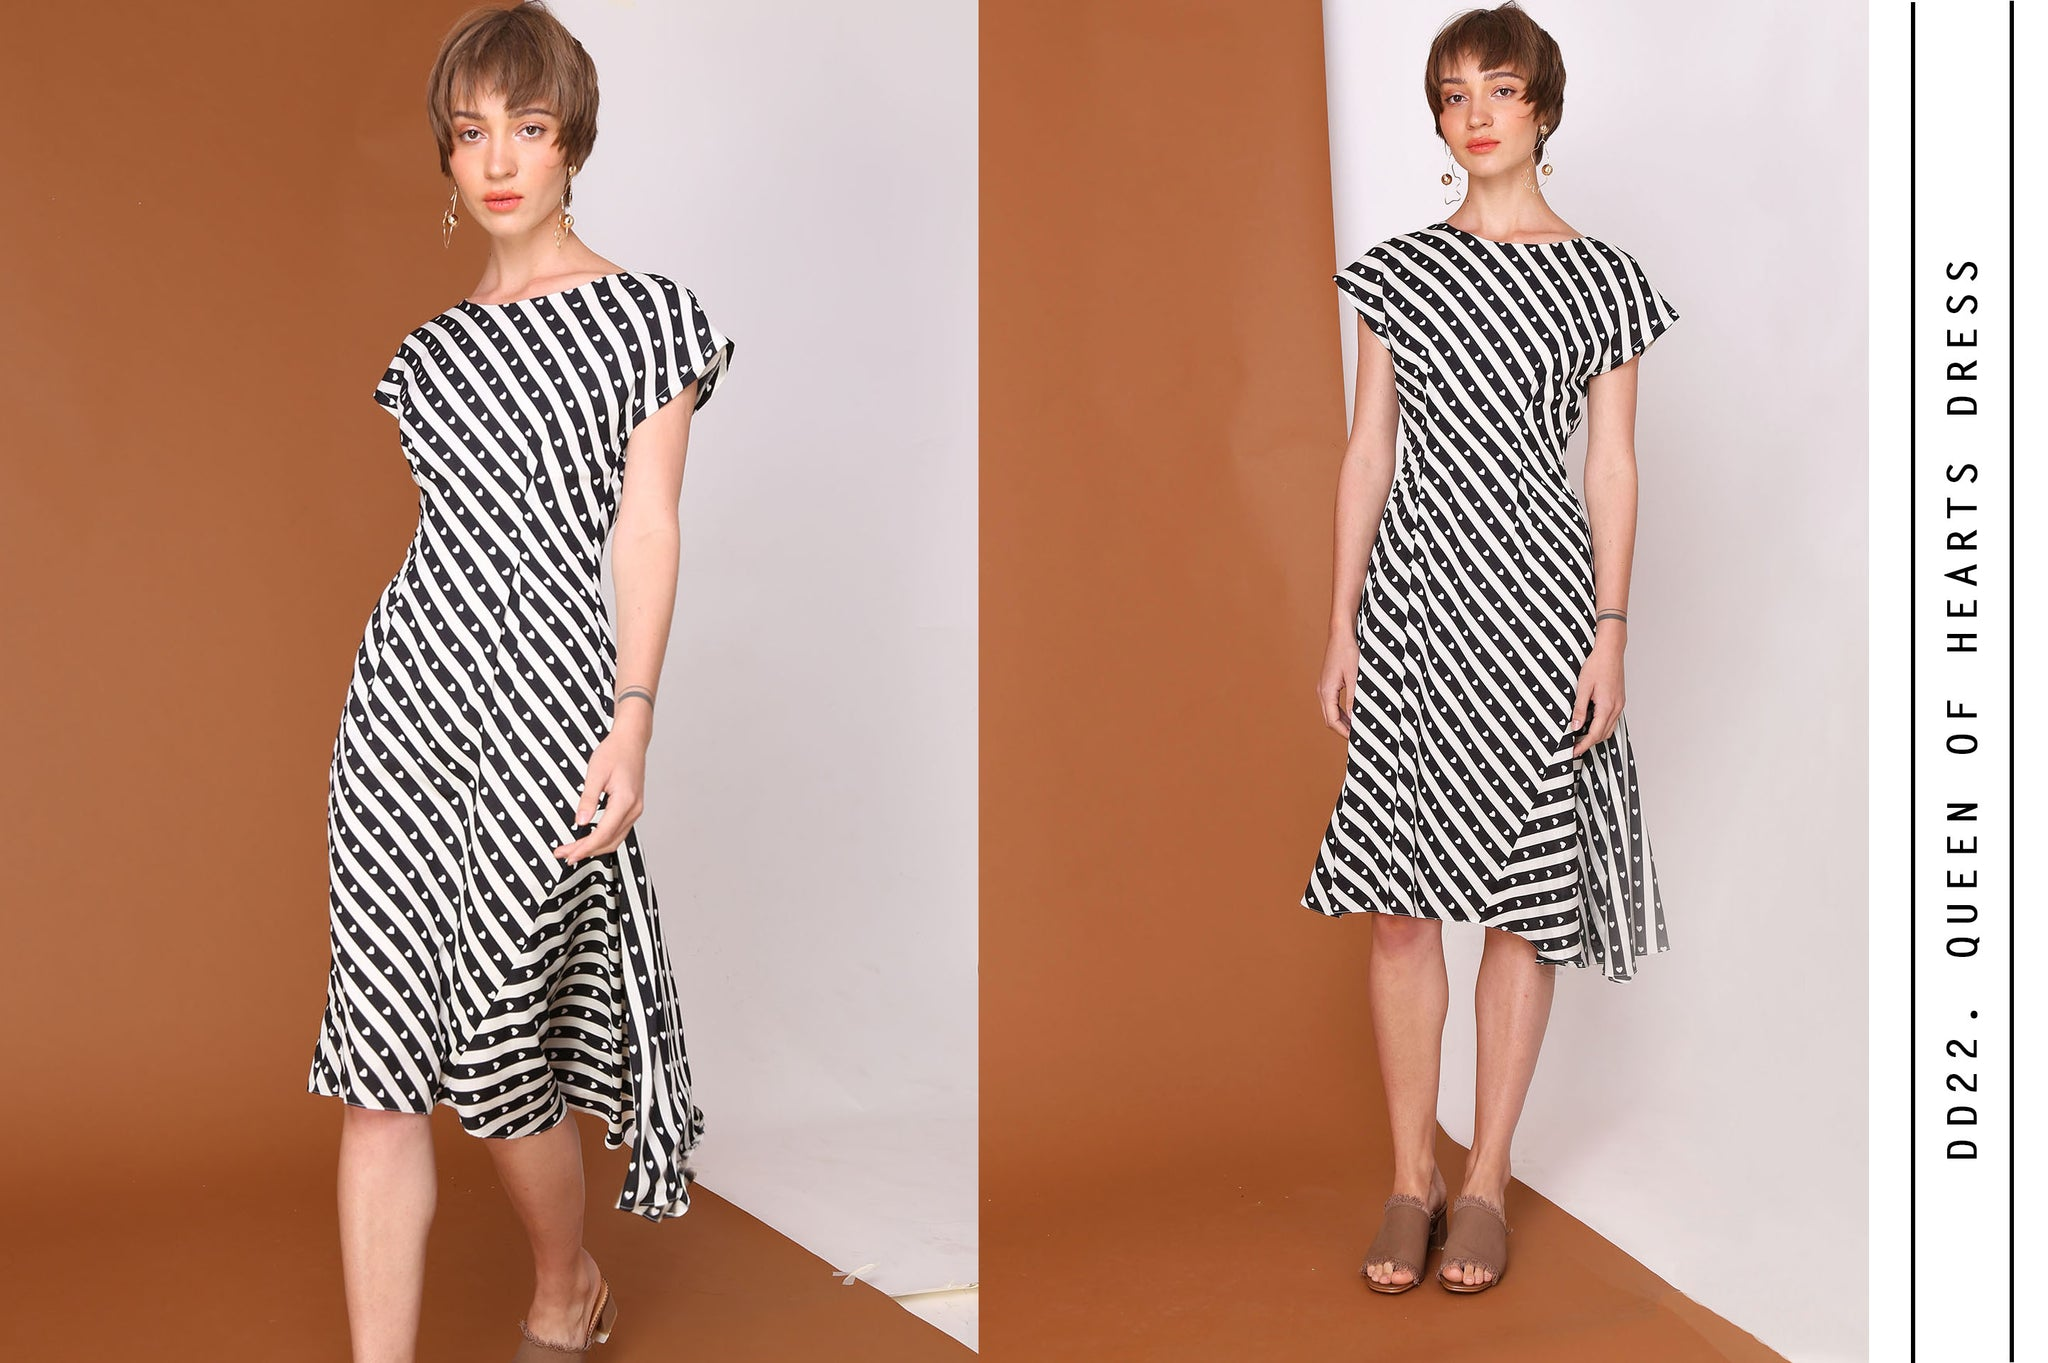 QUEEN OF HEARTS Stripes & Heart Print Asymmetrical Dress